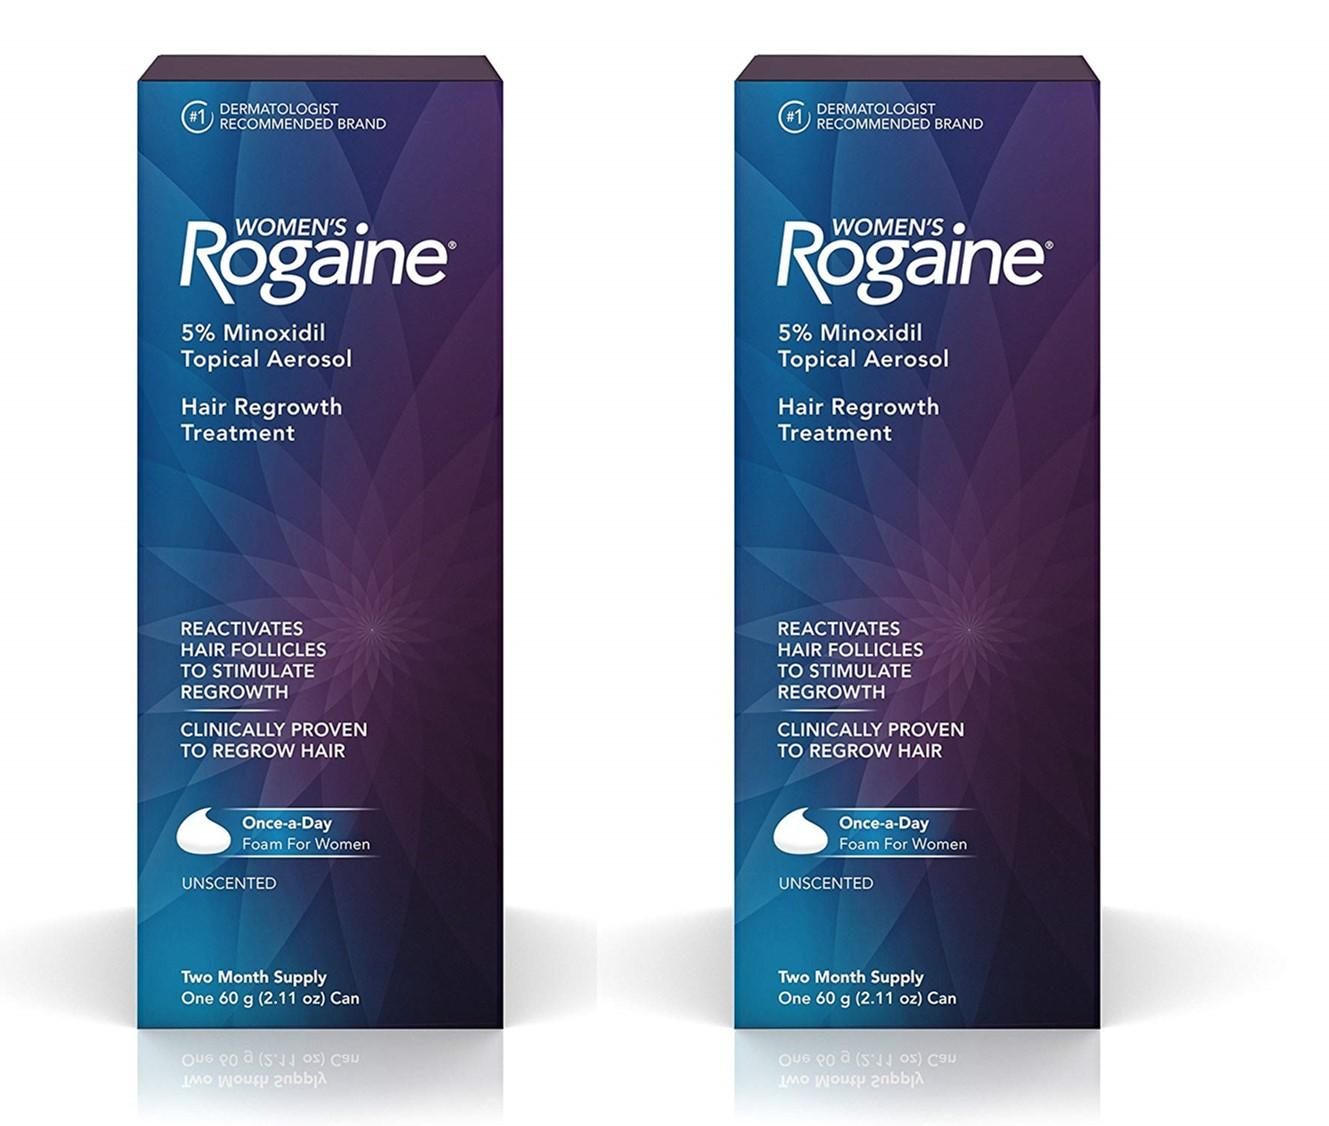 Buy Rogaine Solution Hair Regrowth Foam Minoxidil Topical Aerosol Women For Loss And Regrowth2 X 2 Months Supply